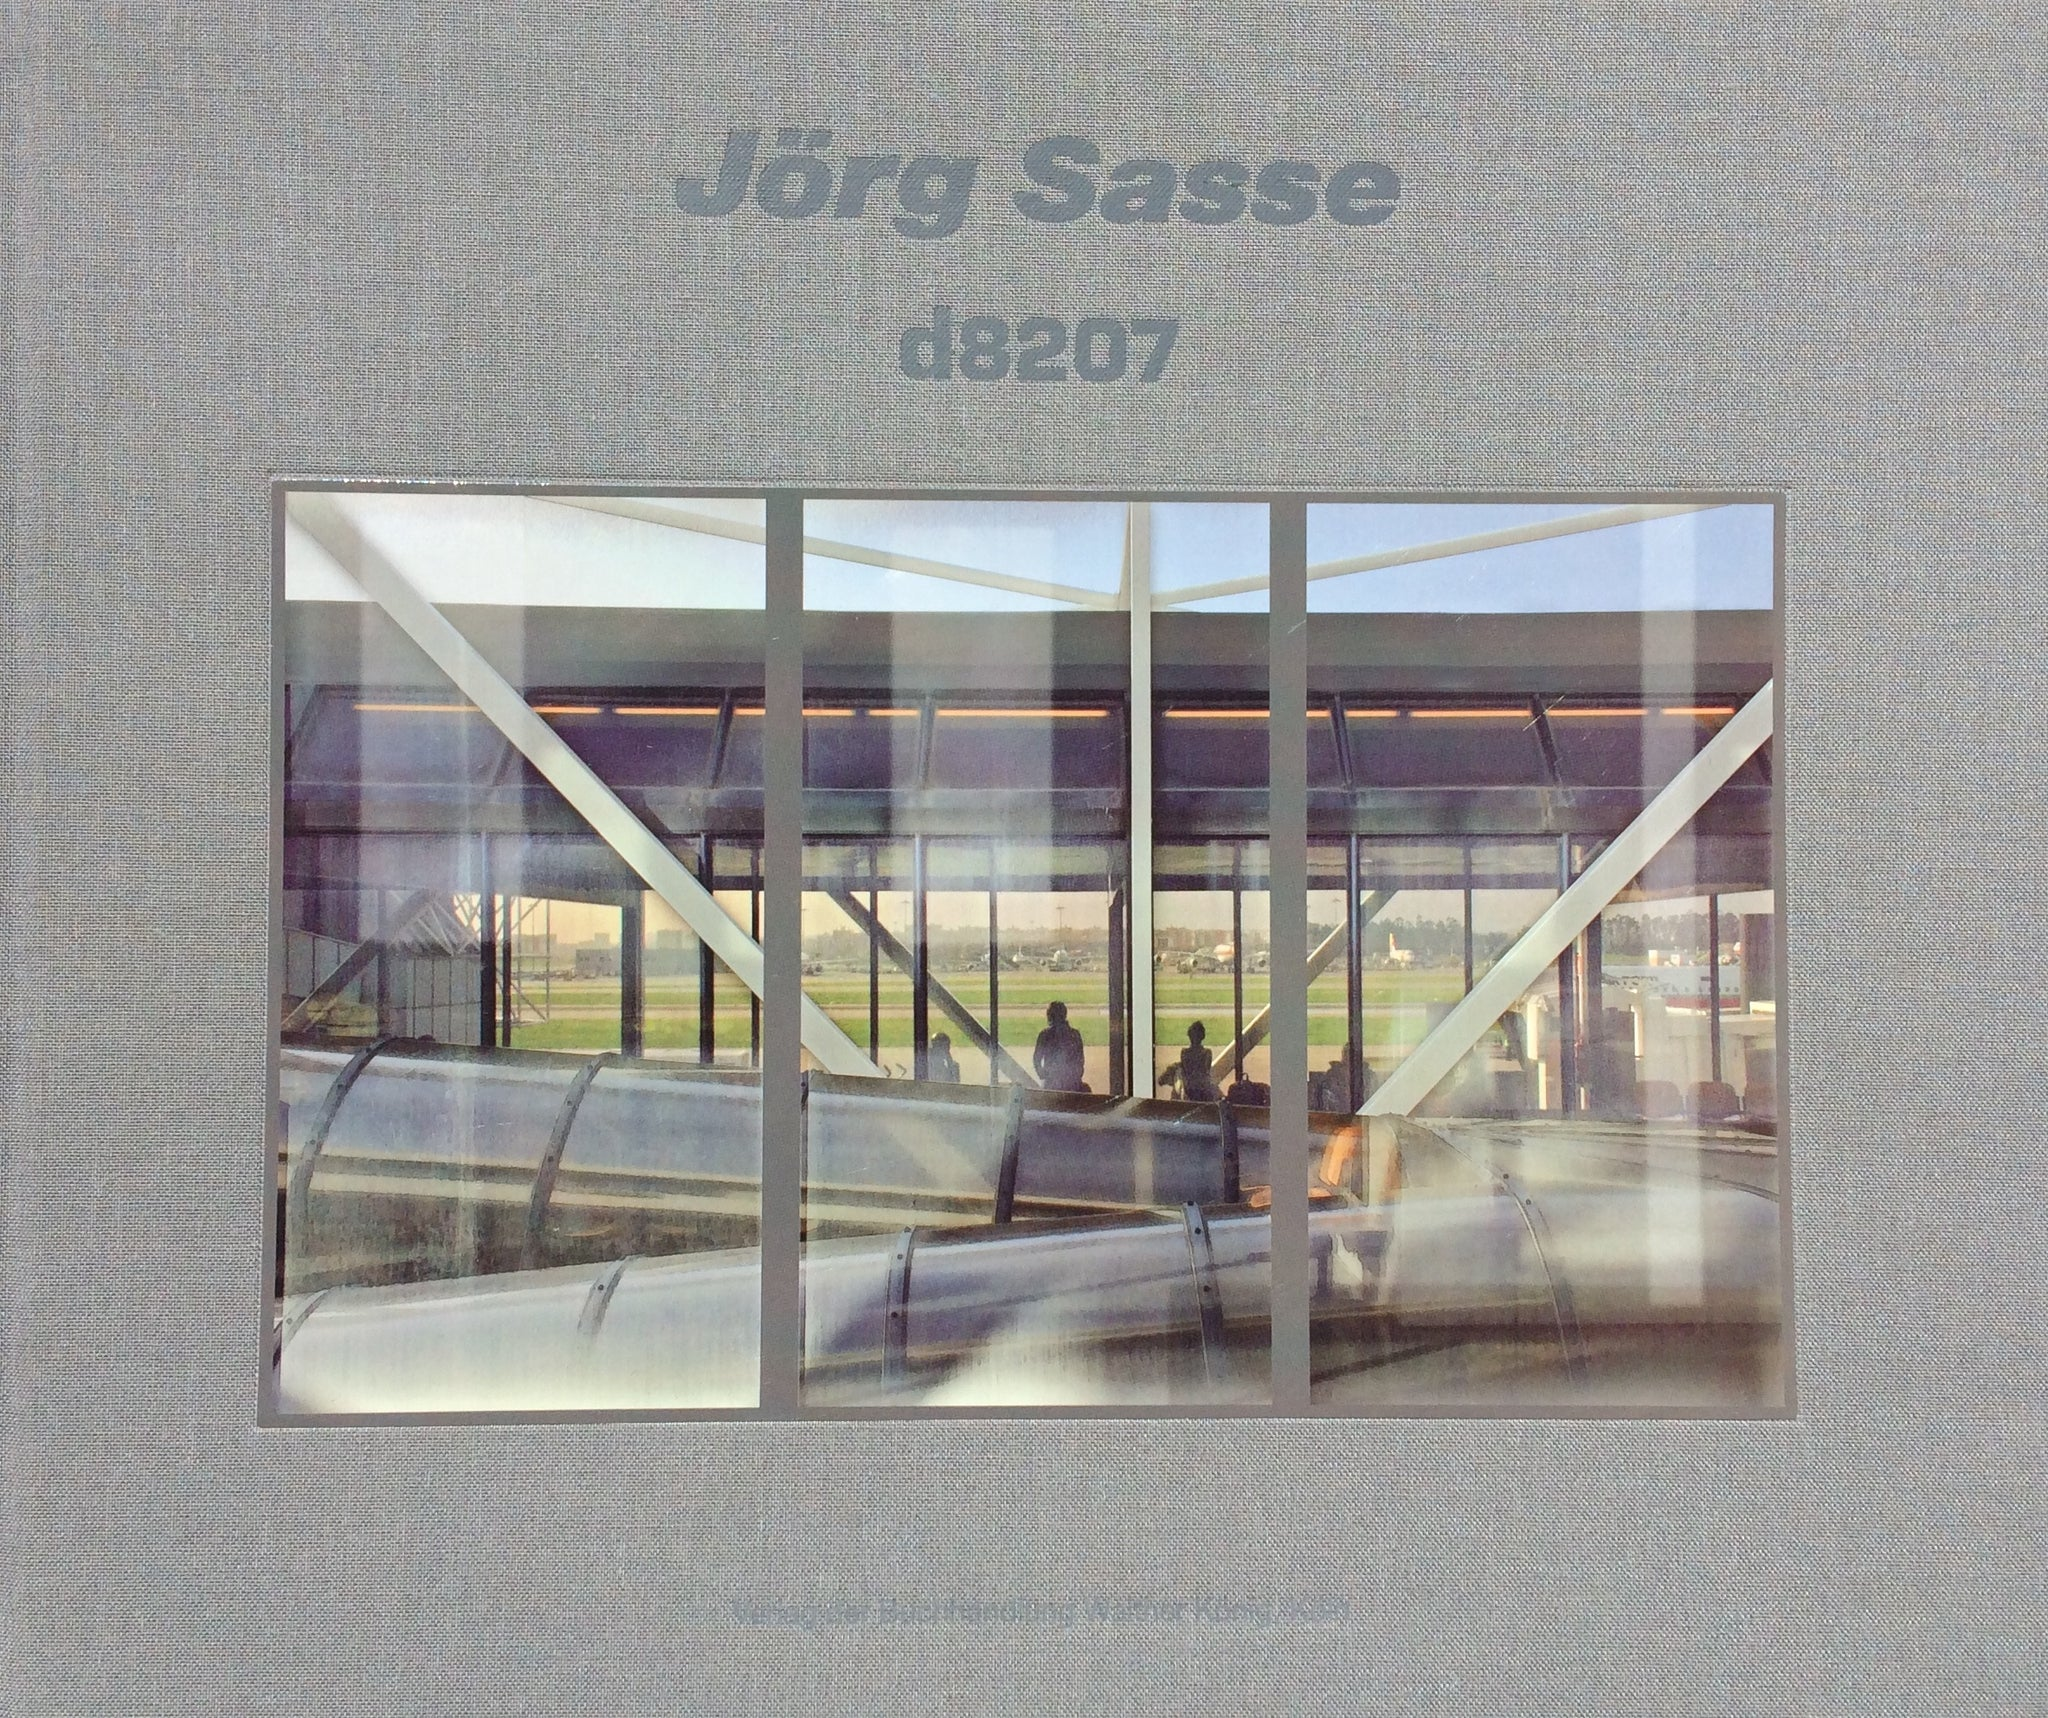 d8207, Jorg Sasse - The Library Project